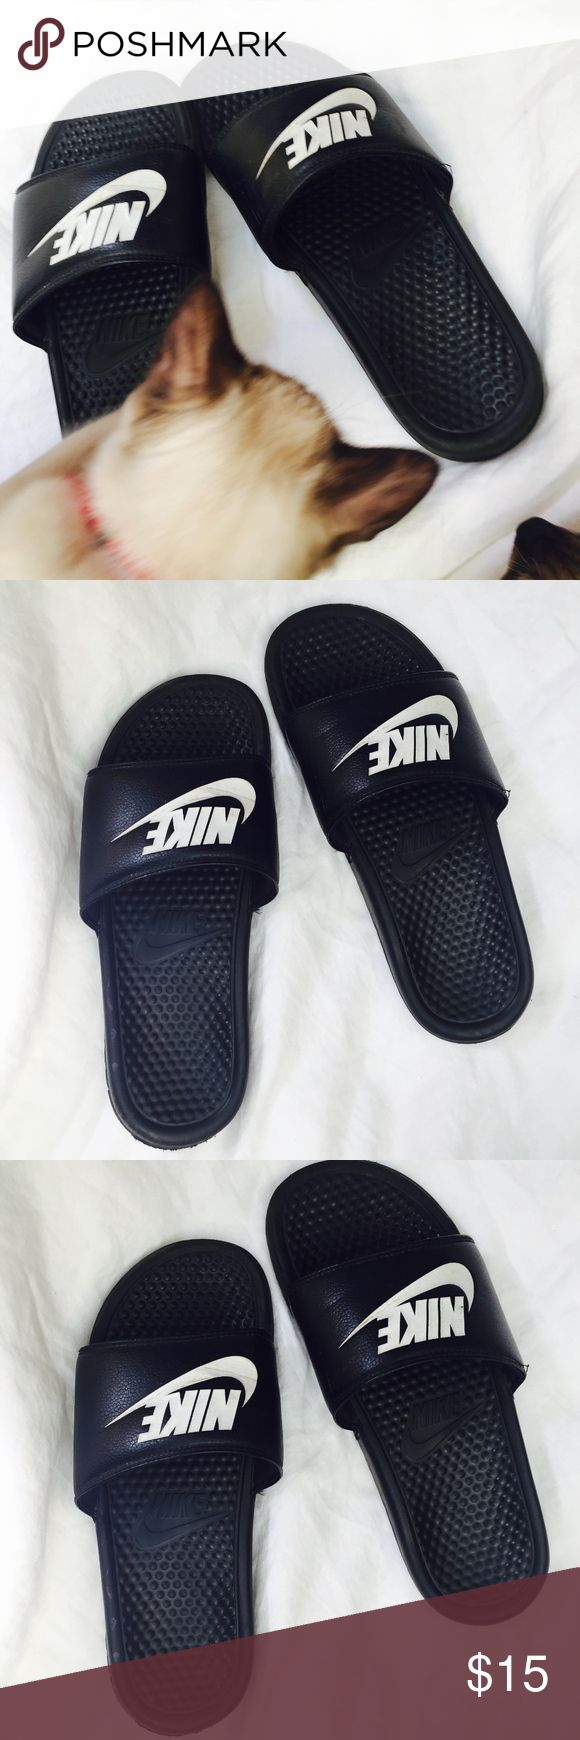 Nike Men's Slip On Sandals While not brand new, these are still looking sharp, and wash easily, are perfect for all year round. Mens size 9 Nike Shoes Sandals & Flip-Flops